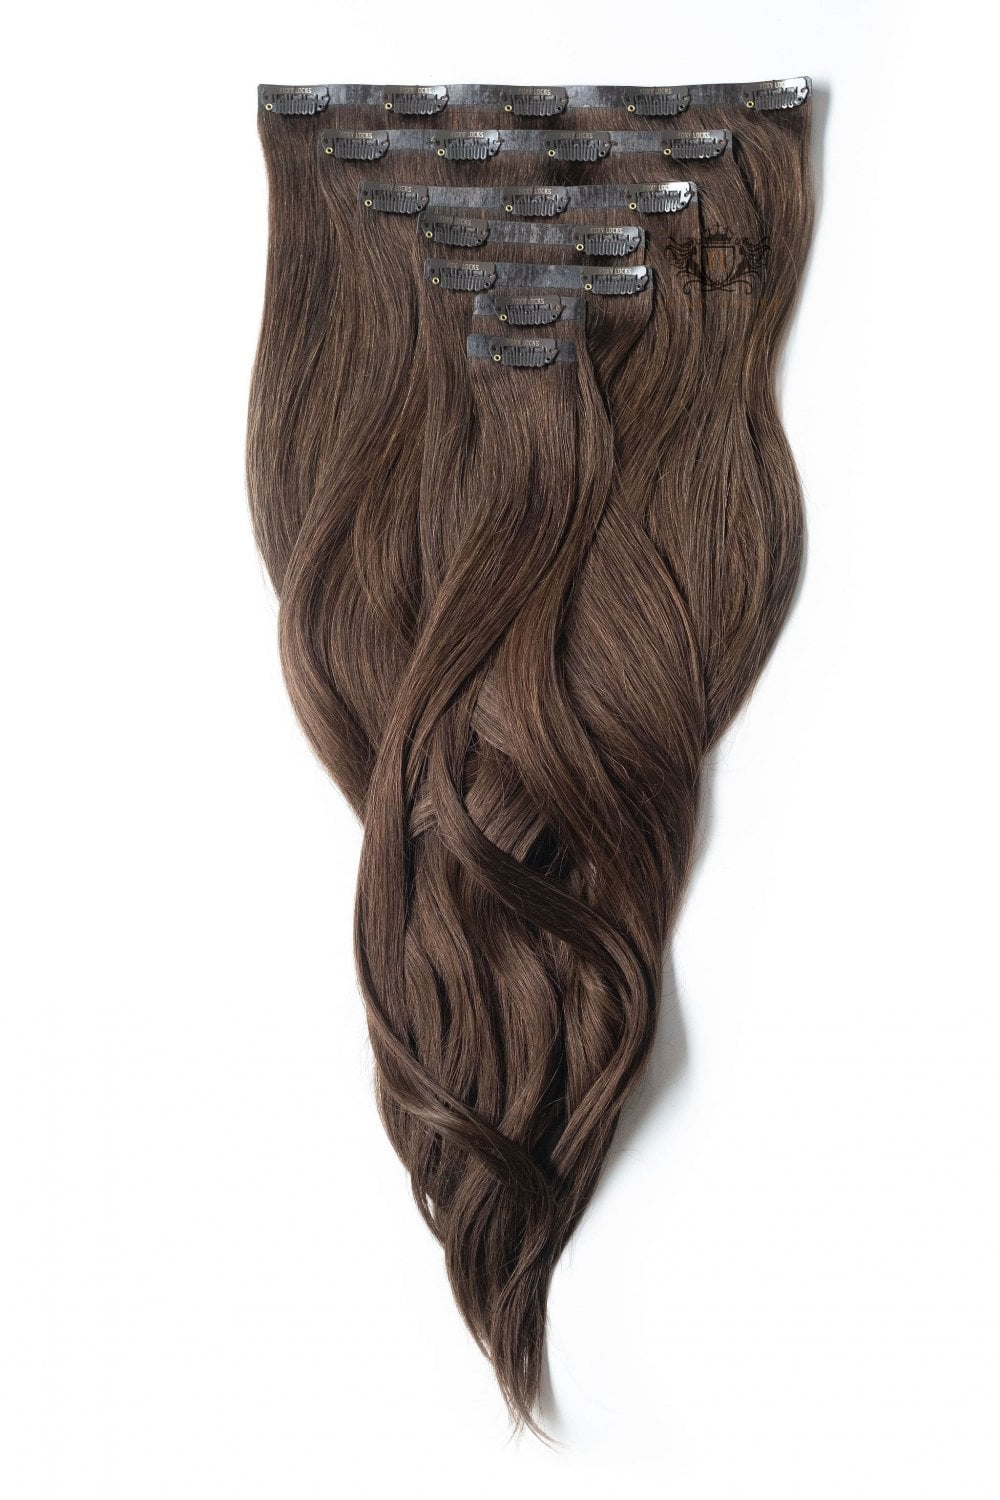 Chocolate Regular Seamless Clip In Human Hair Extensions 125g